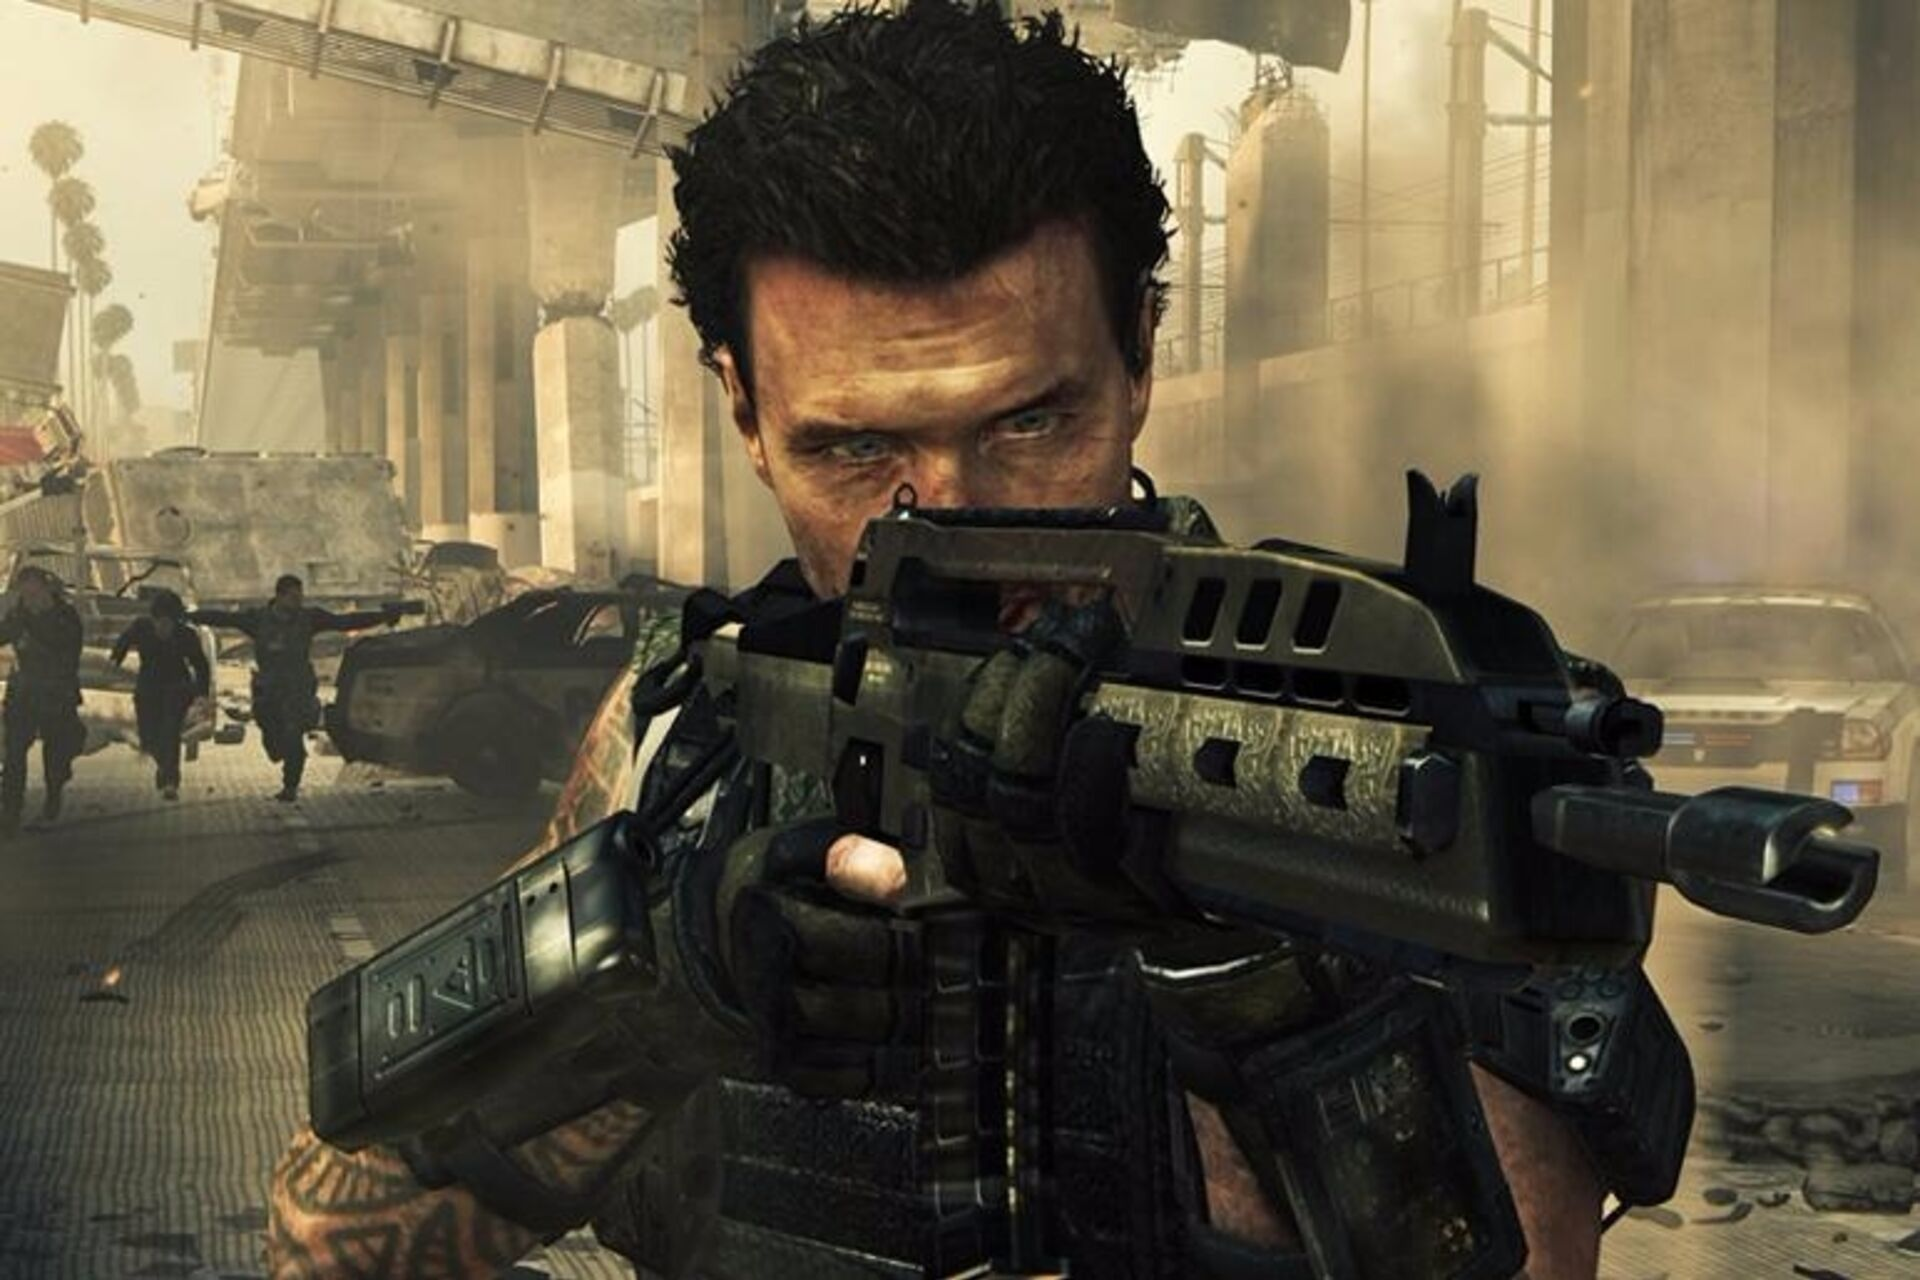 Why The Pros Think Black Ops 2 Is Still The Best Call Of Duty